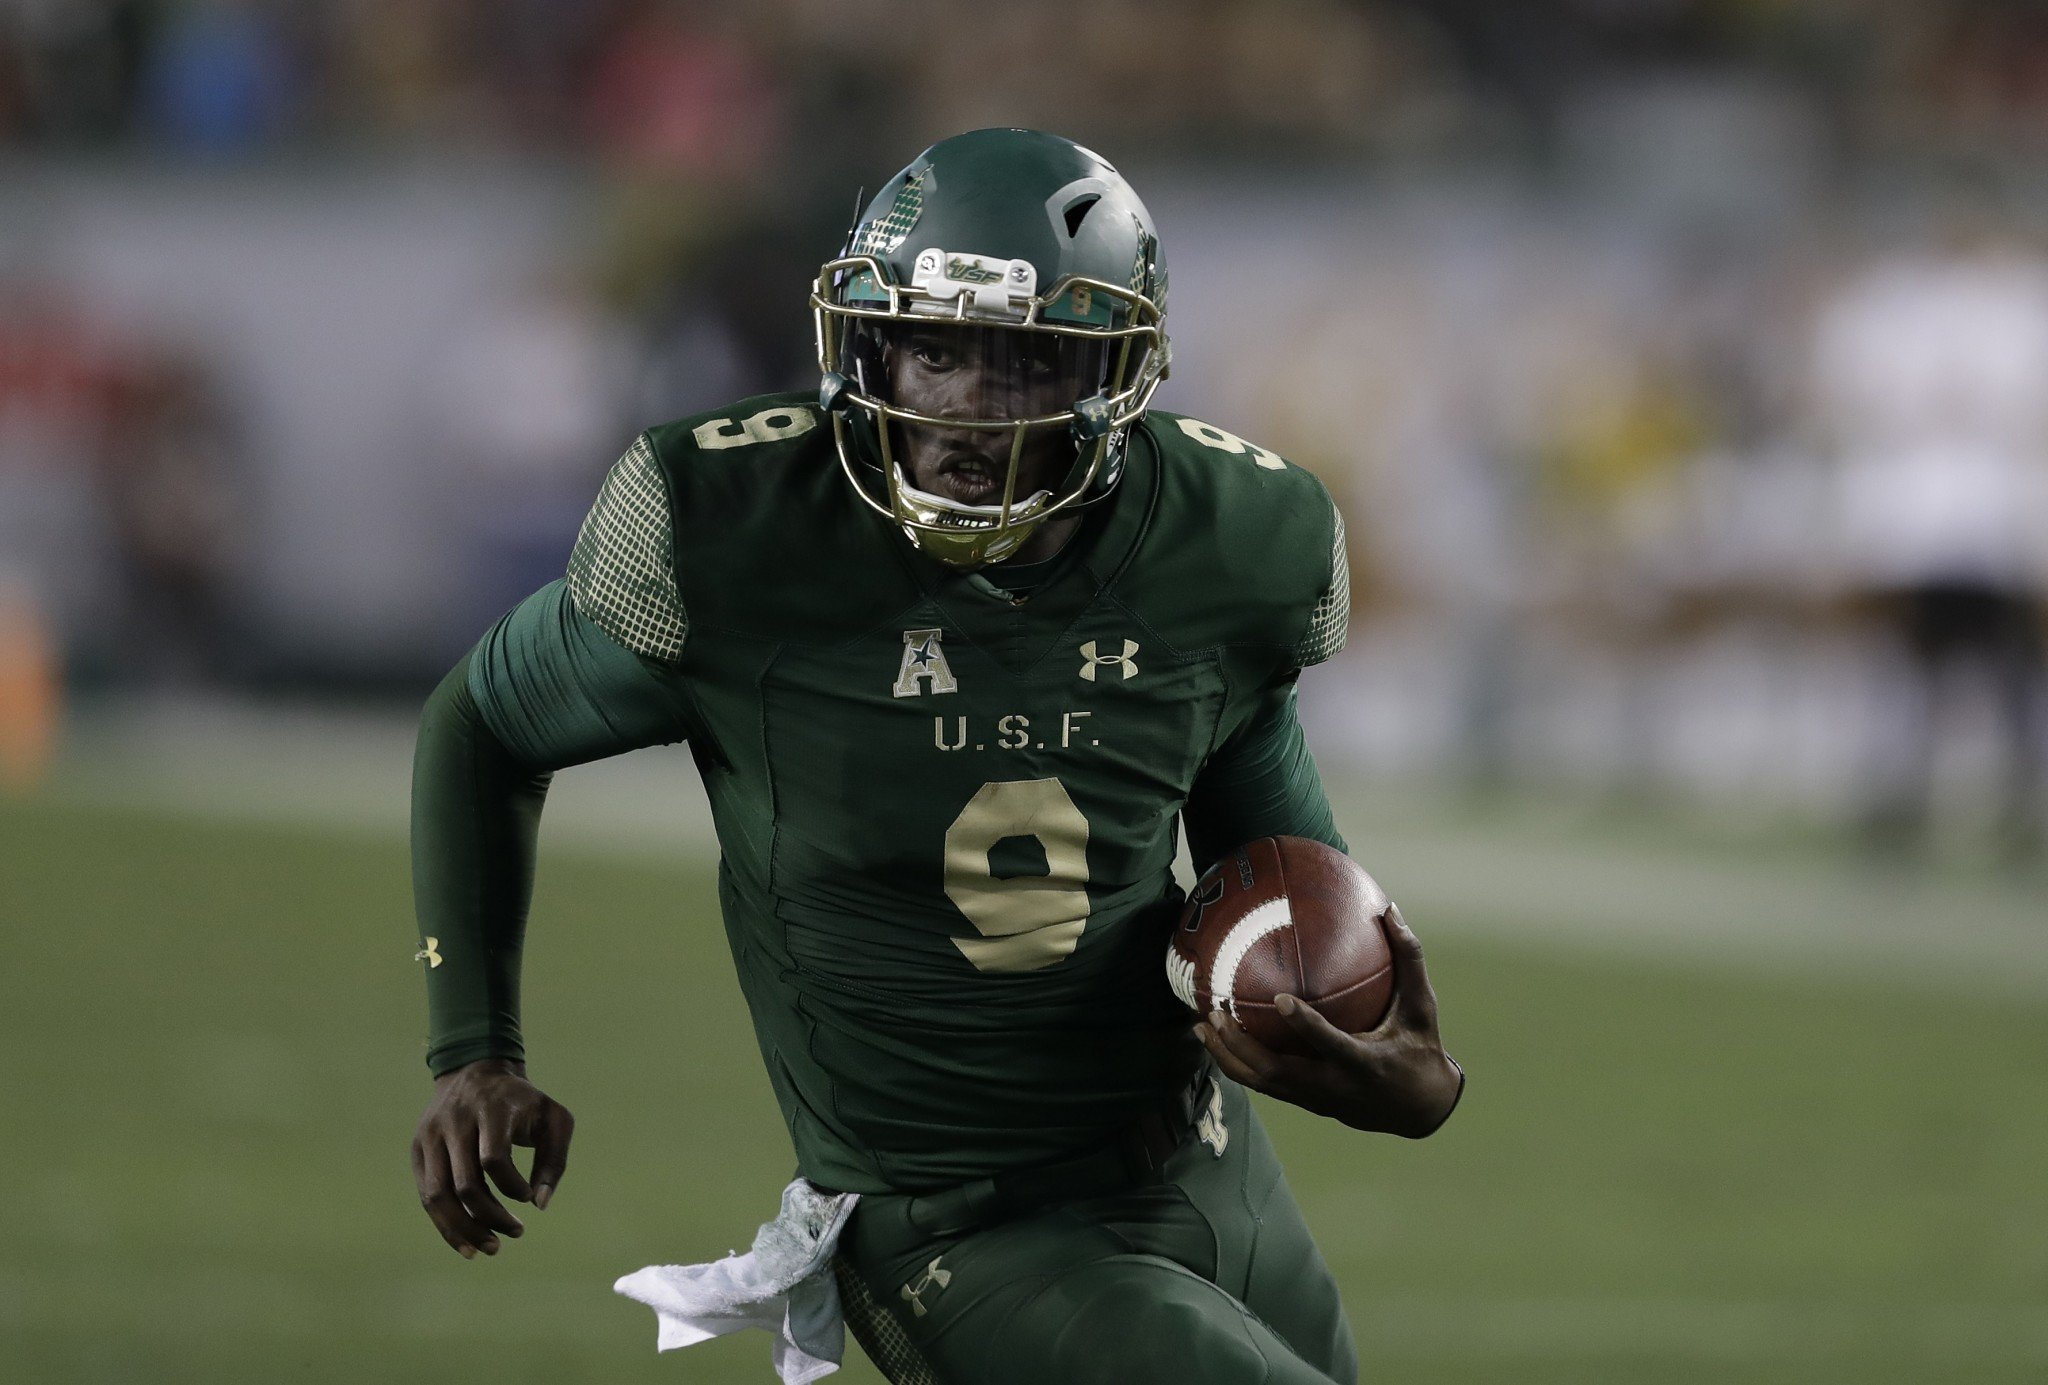 South Florida quarterback Quinton Flowers combined for 37 touchdowns this season. (AP Photo/Chris O'Meara)